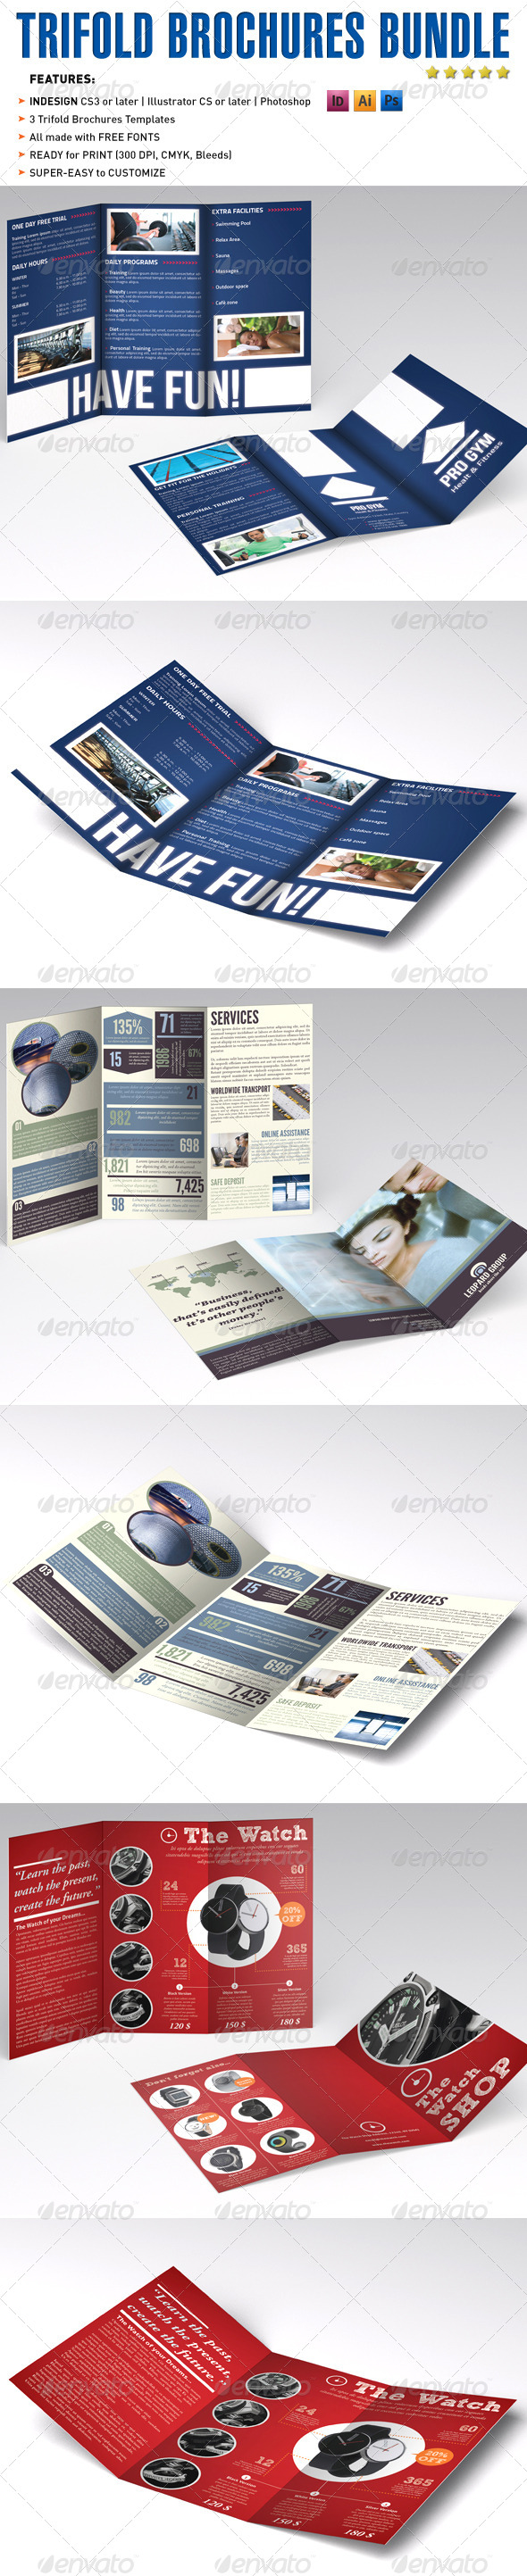 Trifold Brochures Bundle 2